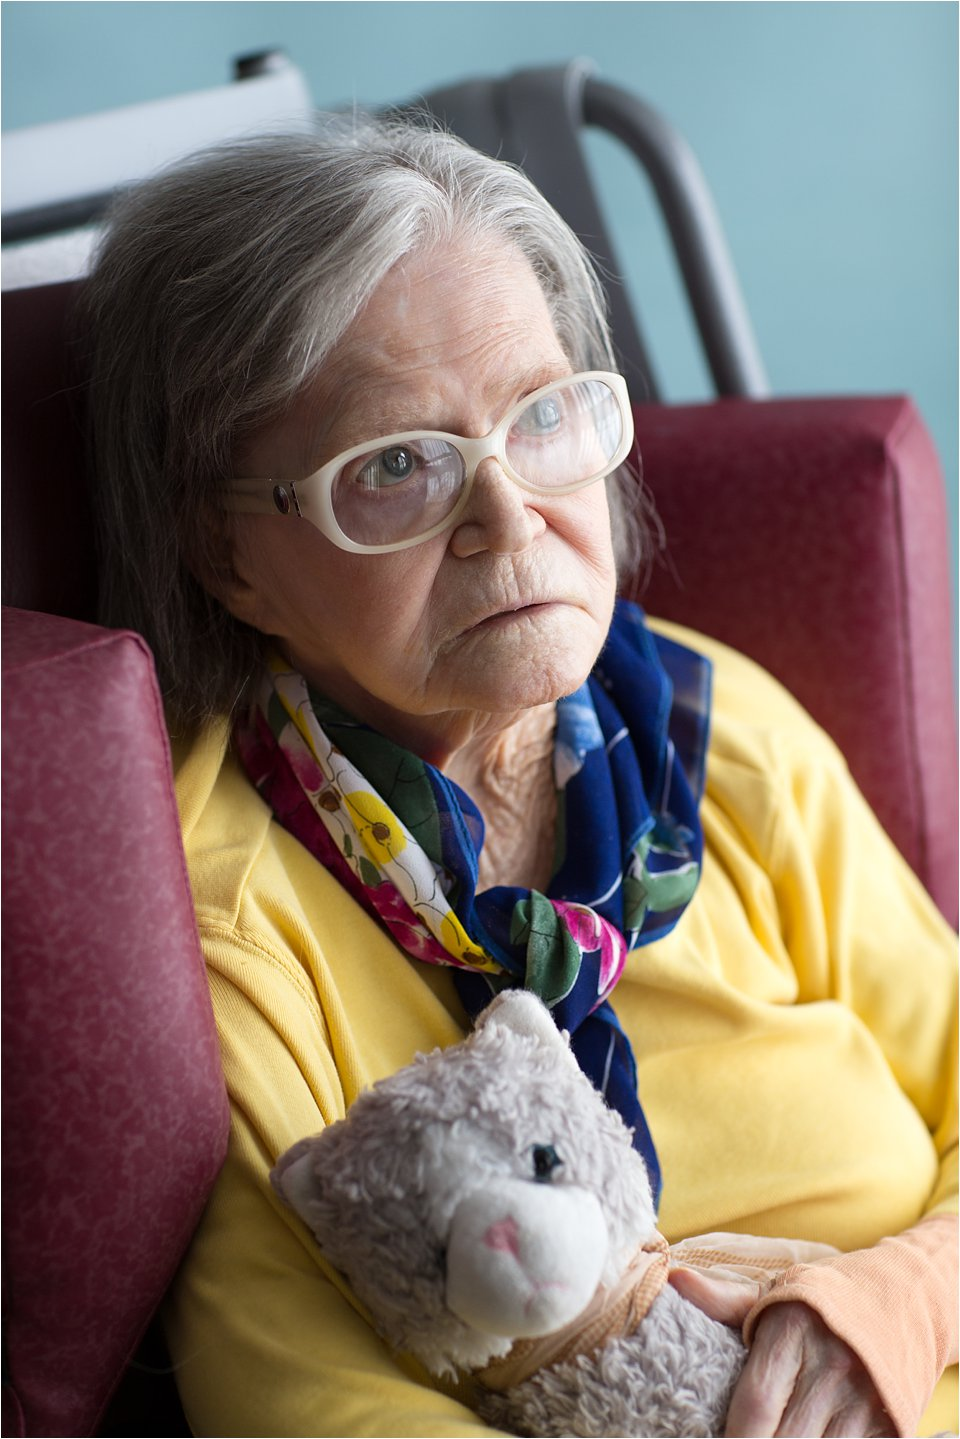 Elderly woman in stylish glasses with stuffed animal (C) Maundy Mitchell